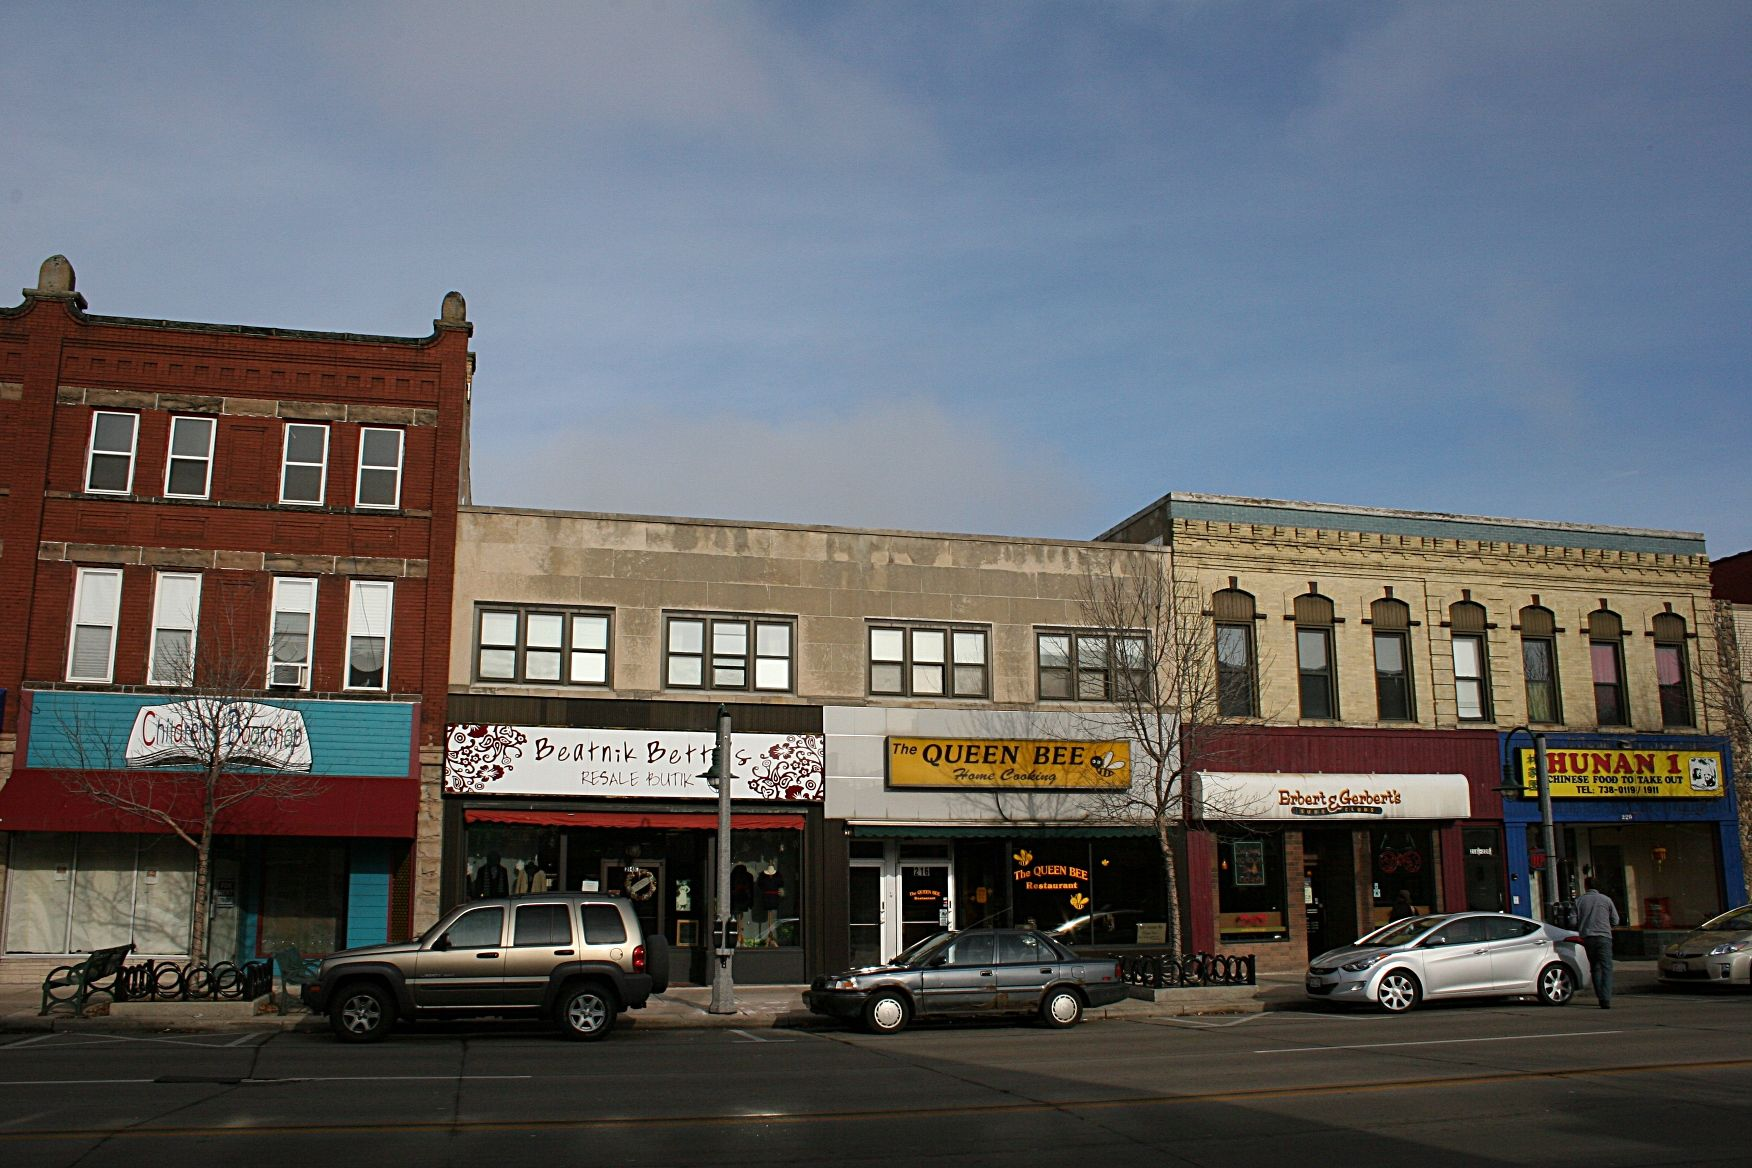 If You Appreciate Old Buildings You Must Visit Historic Downtown Appleton Wisconsin Appleton Old Buildings Appleton Wisconsin